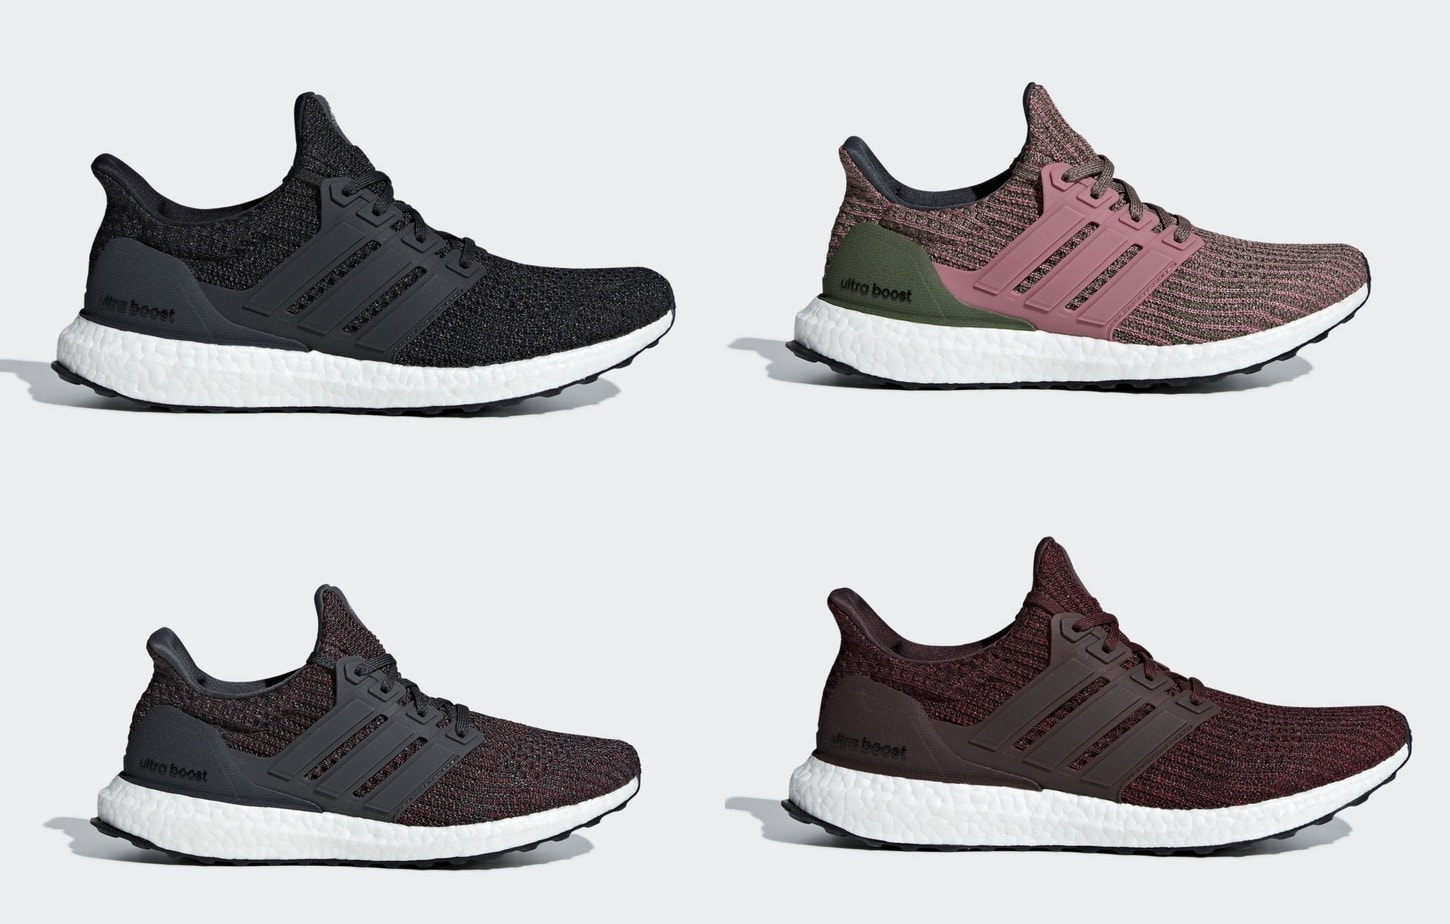 1087c009ff6 ... atr neutral running maroon 010c5 80552  new zealand the adidas ultra  boost is always up to take on a unique new colorway